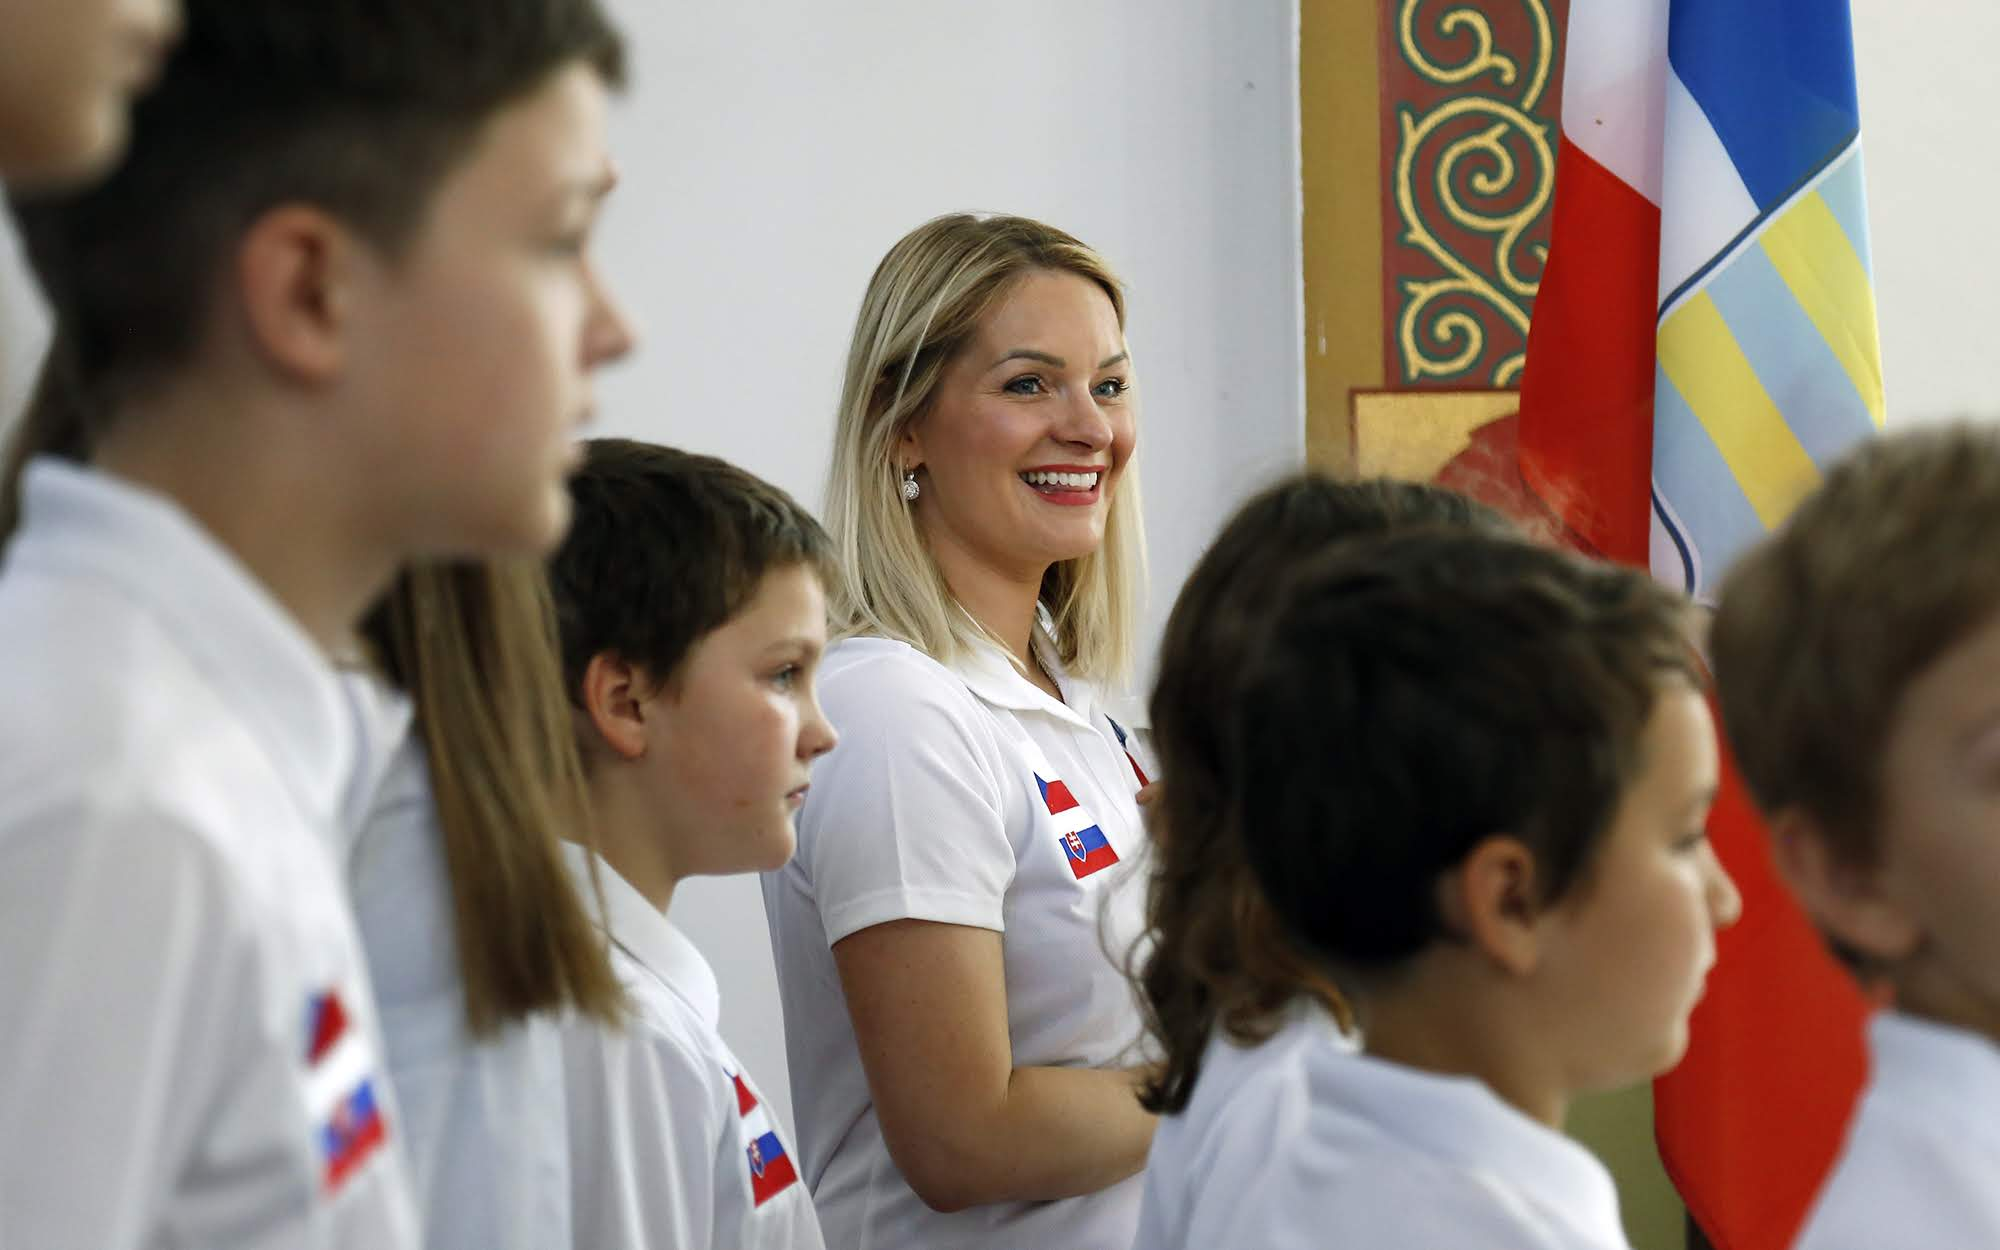 Alice Zdrale, director of the the Czech and Slovak School of Pittsburgh, helps lead students as the rehearse singing the Czech national anthem. (Photo by Ryan Loew/PublicSource)